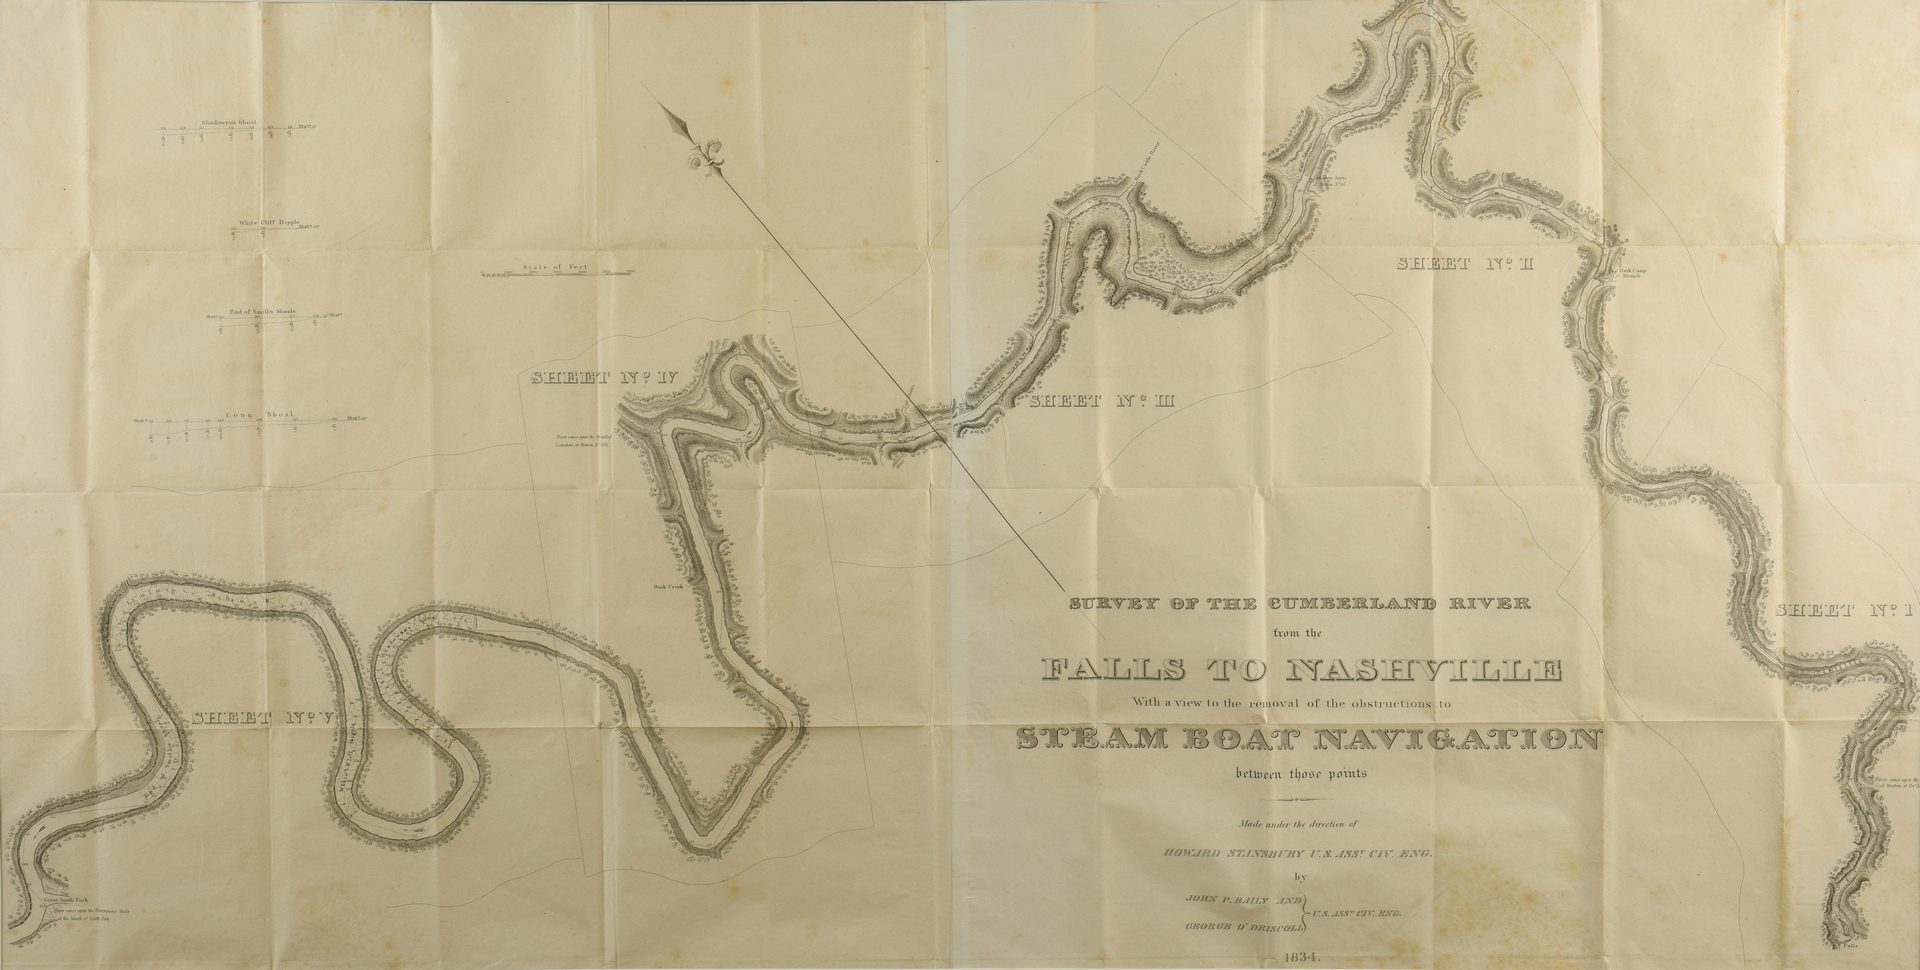 Lot 533: Survey of the Cumberland River, 1834 Steamboat Map